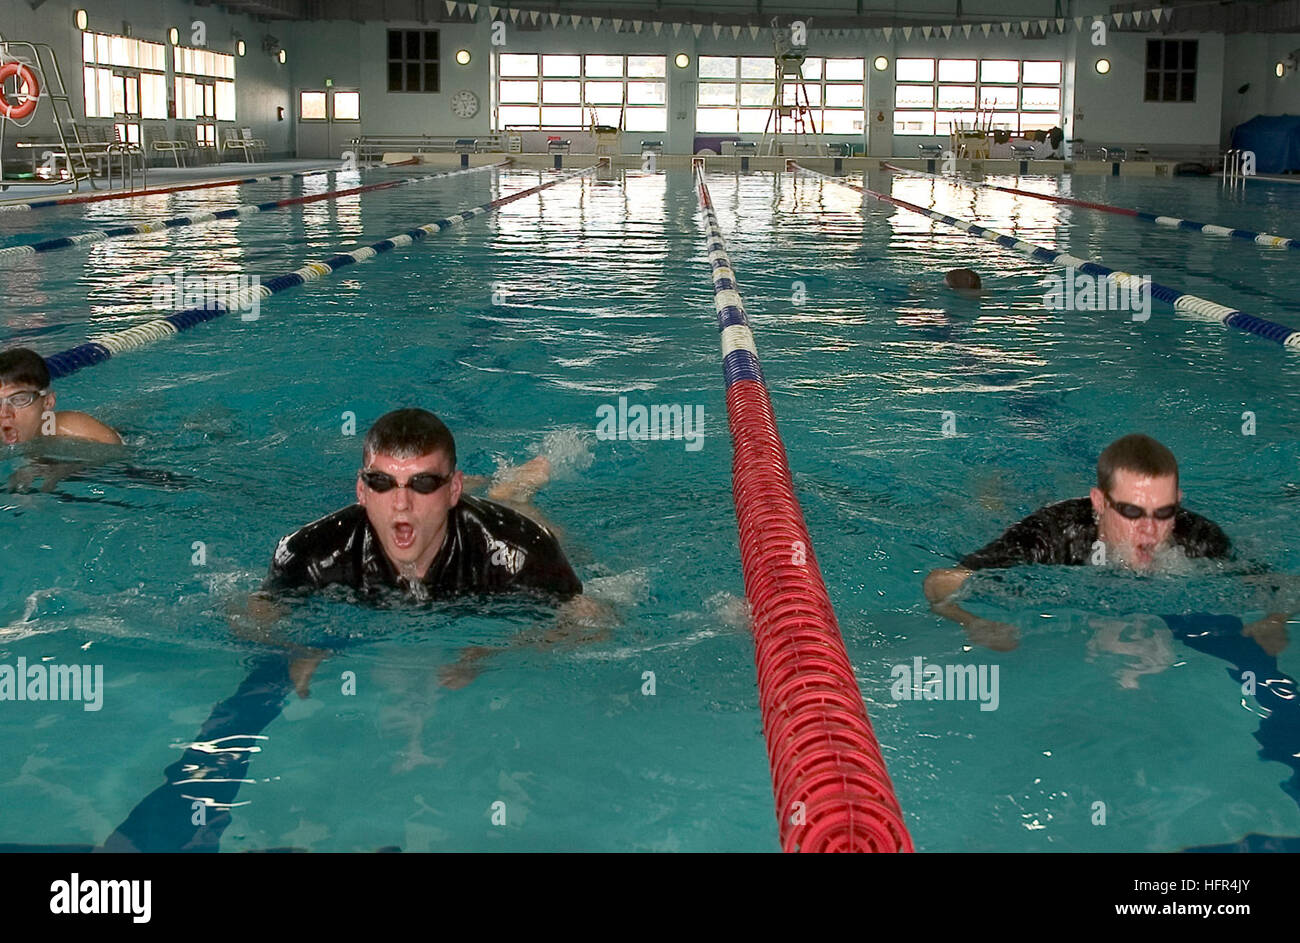 070411-N-2638R-001 YOKOSUKA, Japan (April 11, 2007) - Search and rescue (SAR) swimmers swim laps during training - Stock Image